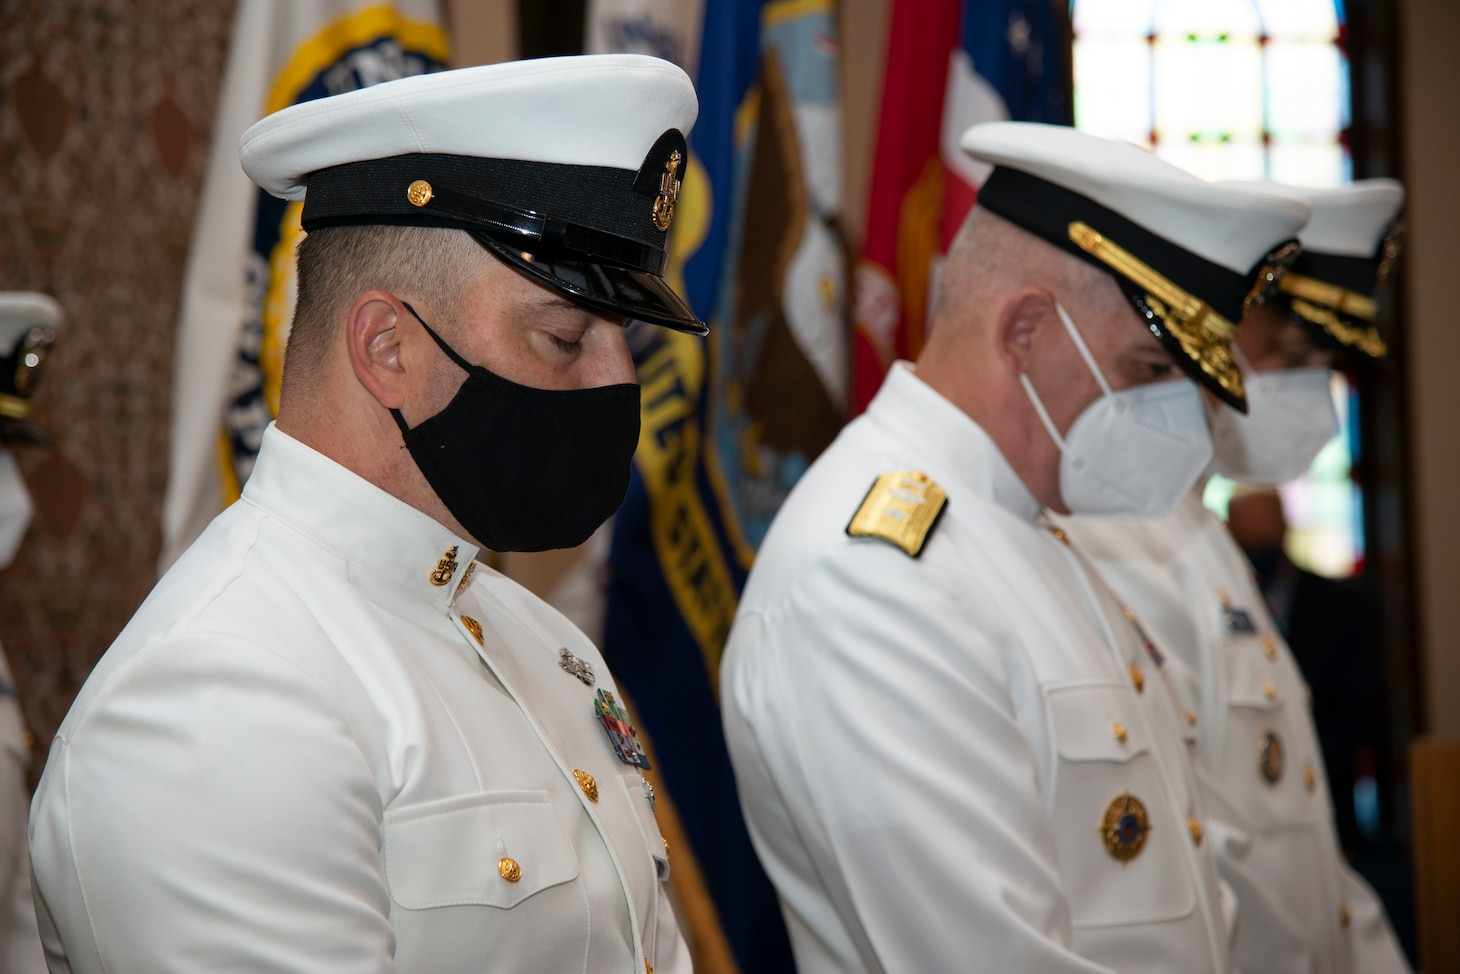 Students assigned to the Naval Chaplaincy School and Center, on Naval Station Newport, R.I., in the Basic Leadership Course, class 21030, lower their heads for the invocation during their graduation ceremony at the Chapel of Hope, Aug. 4. The Basic Leadership Course is a seven-week course which teaches basic knowledge of military chaplaincy as well as the fundamental skills to enable them to function effectively in a variety of sea service venues. (U.S. Navy photo by Mass Communication Specialist 2nd Class Derien C. Luce)